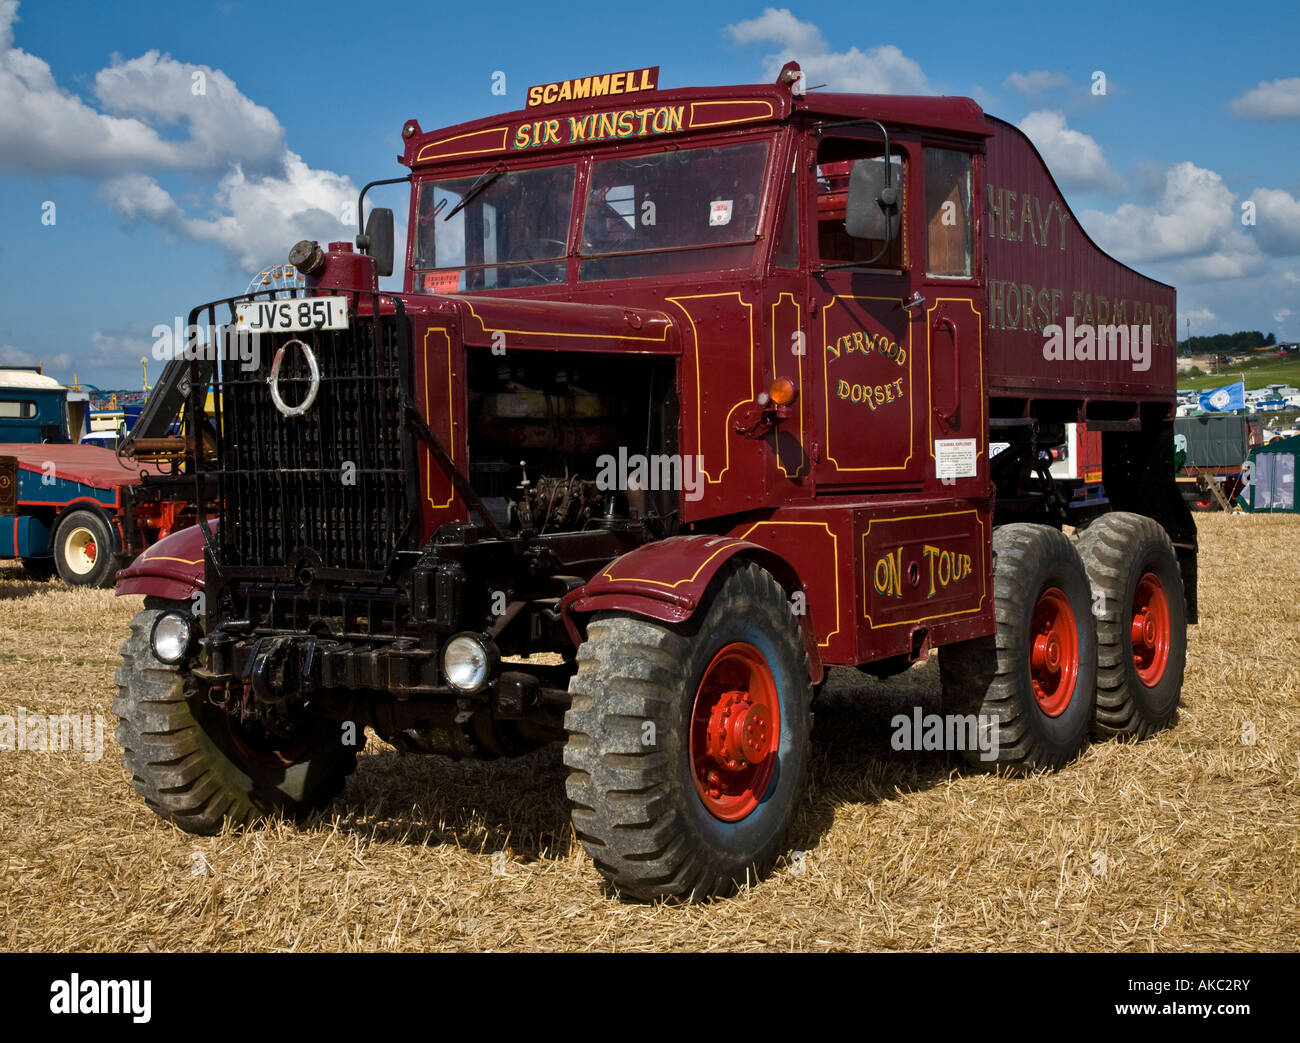 1951 Scammell Explorer showman's truck, Sir Winston, Reg No. JVS 851, at the Great Dorset Steam Fair, England, - Stock Image